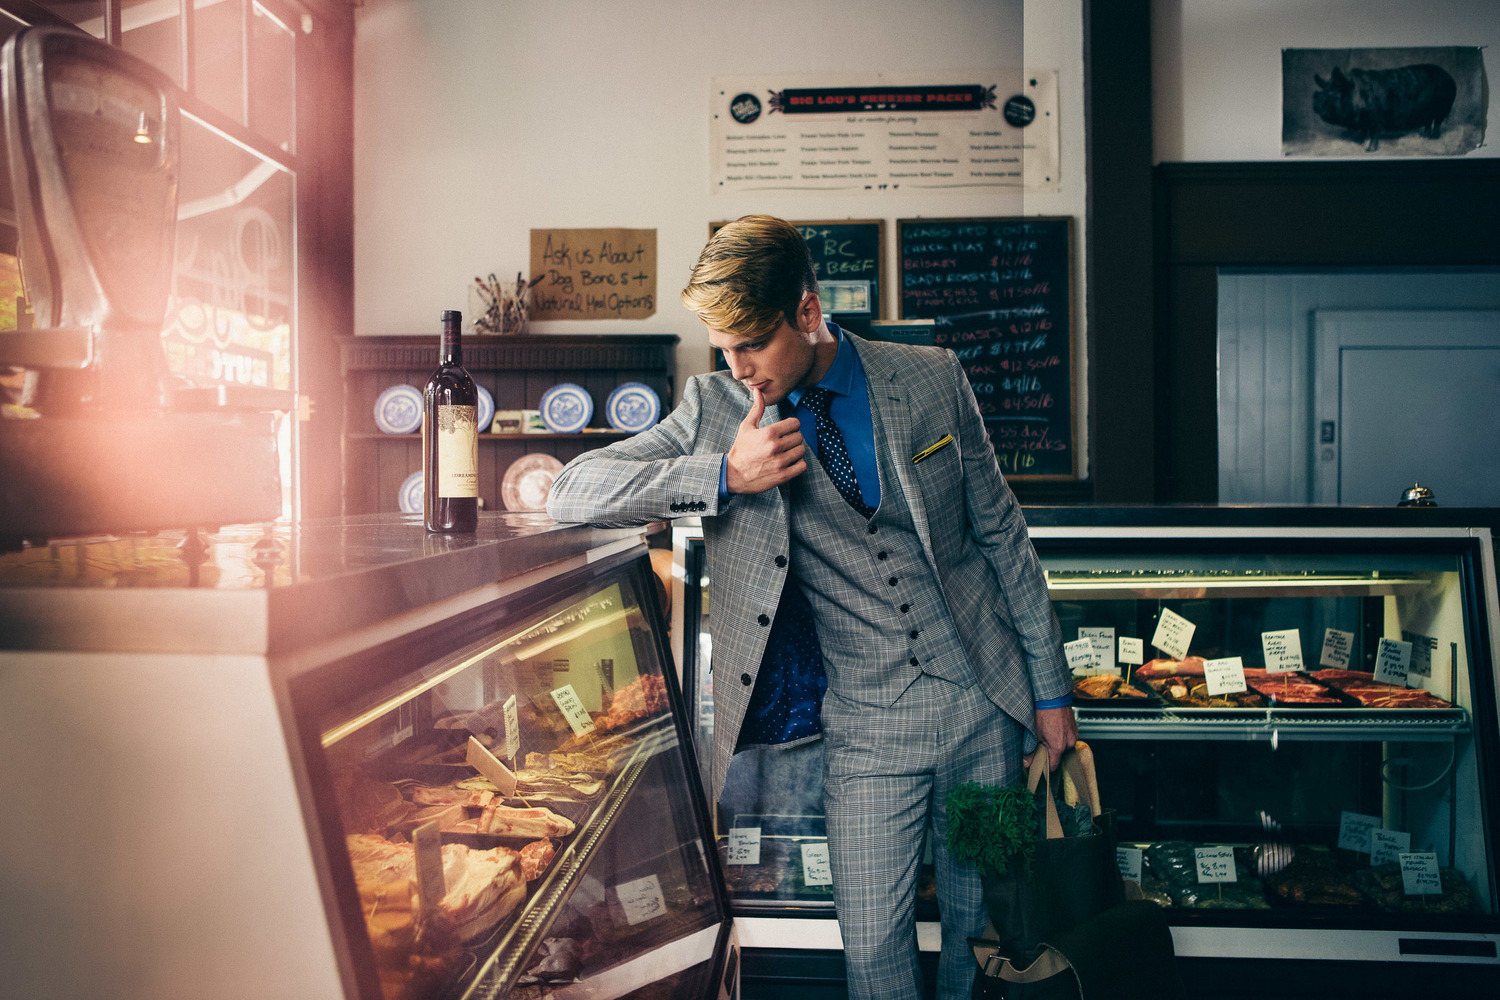 Indochino-W14_Shopping_9793-Edit-retouched.jpg